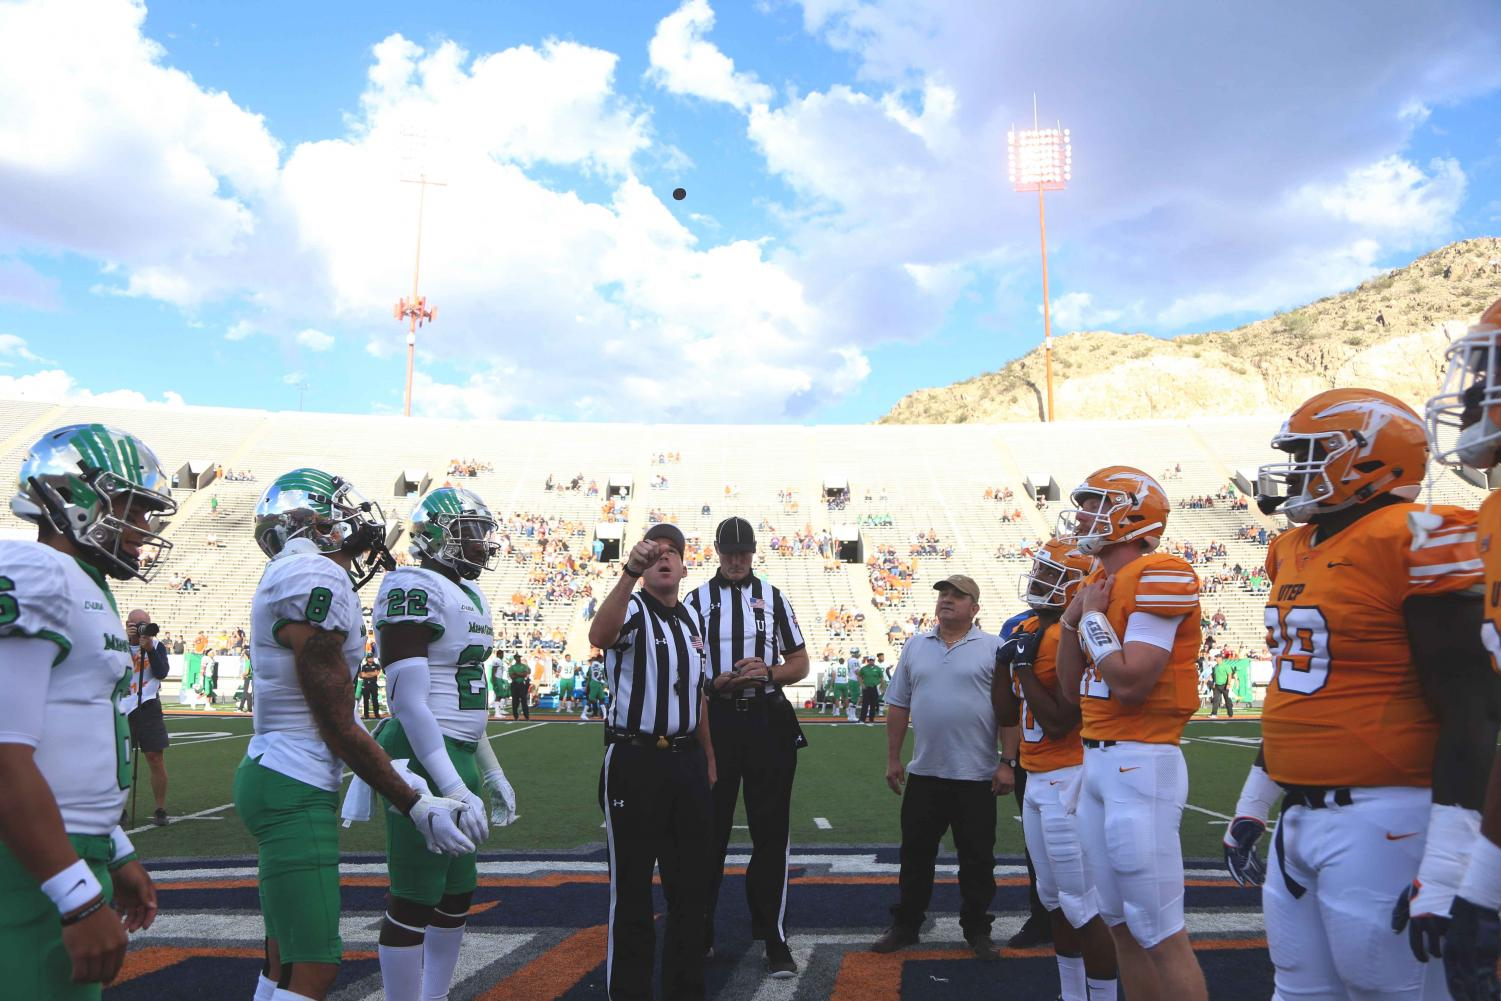 Captains+meet+at+midfield+for+the+coin+flip+before+NorthTexas+takes+on+UTEP+on+Saturday%2C+Oct.+6+at+the+Sunbowl+Stadium.+